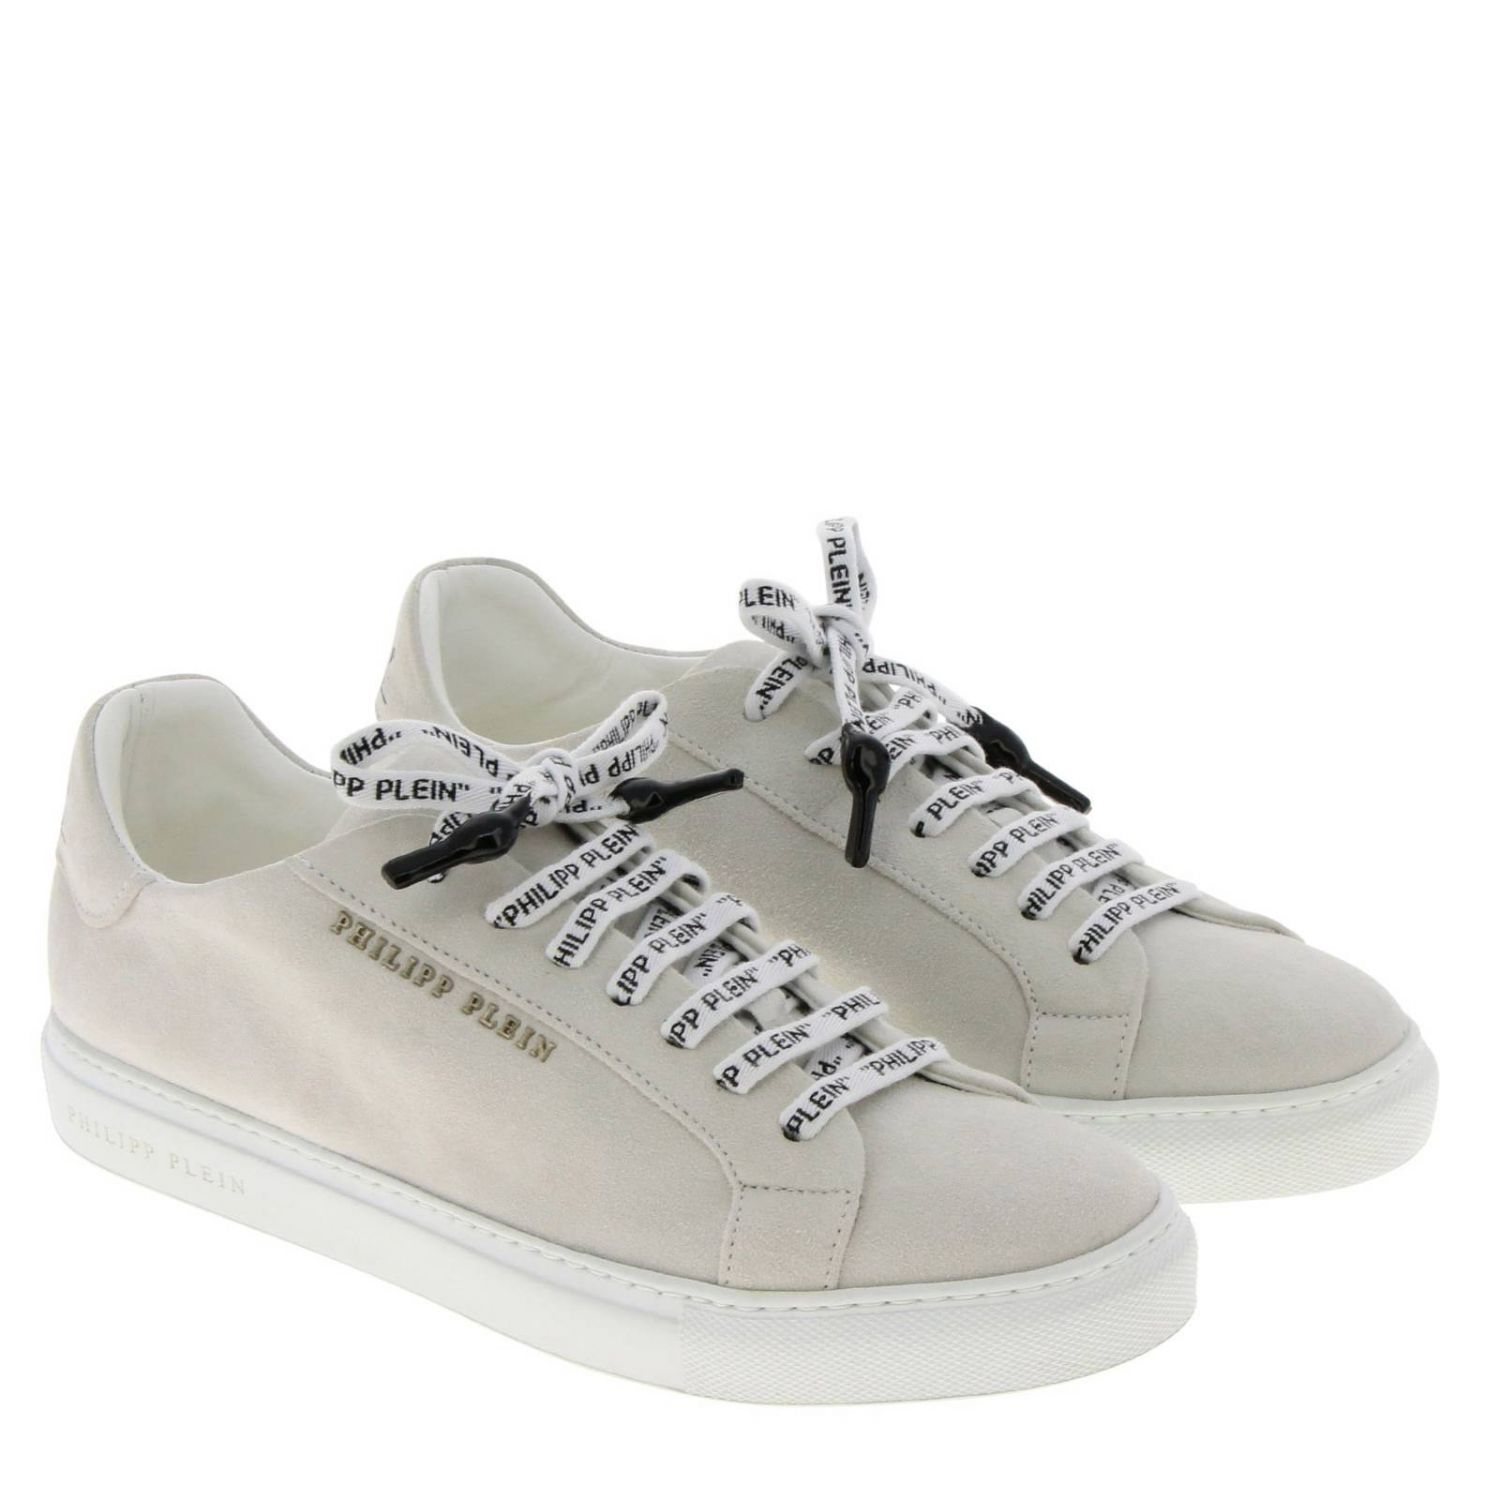 Shoes men Philipp Plein white 2